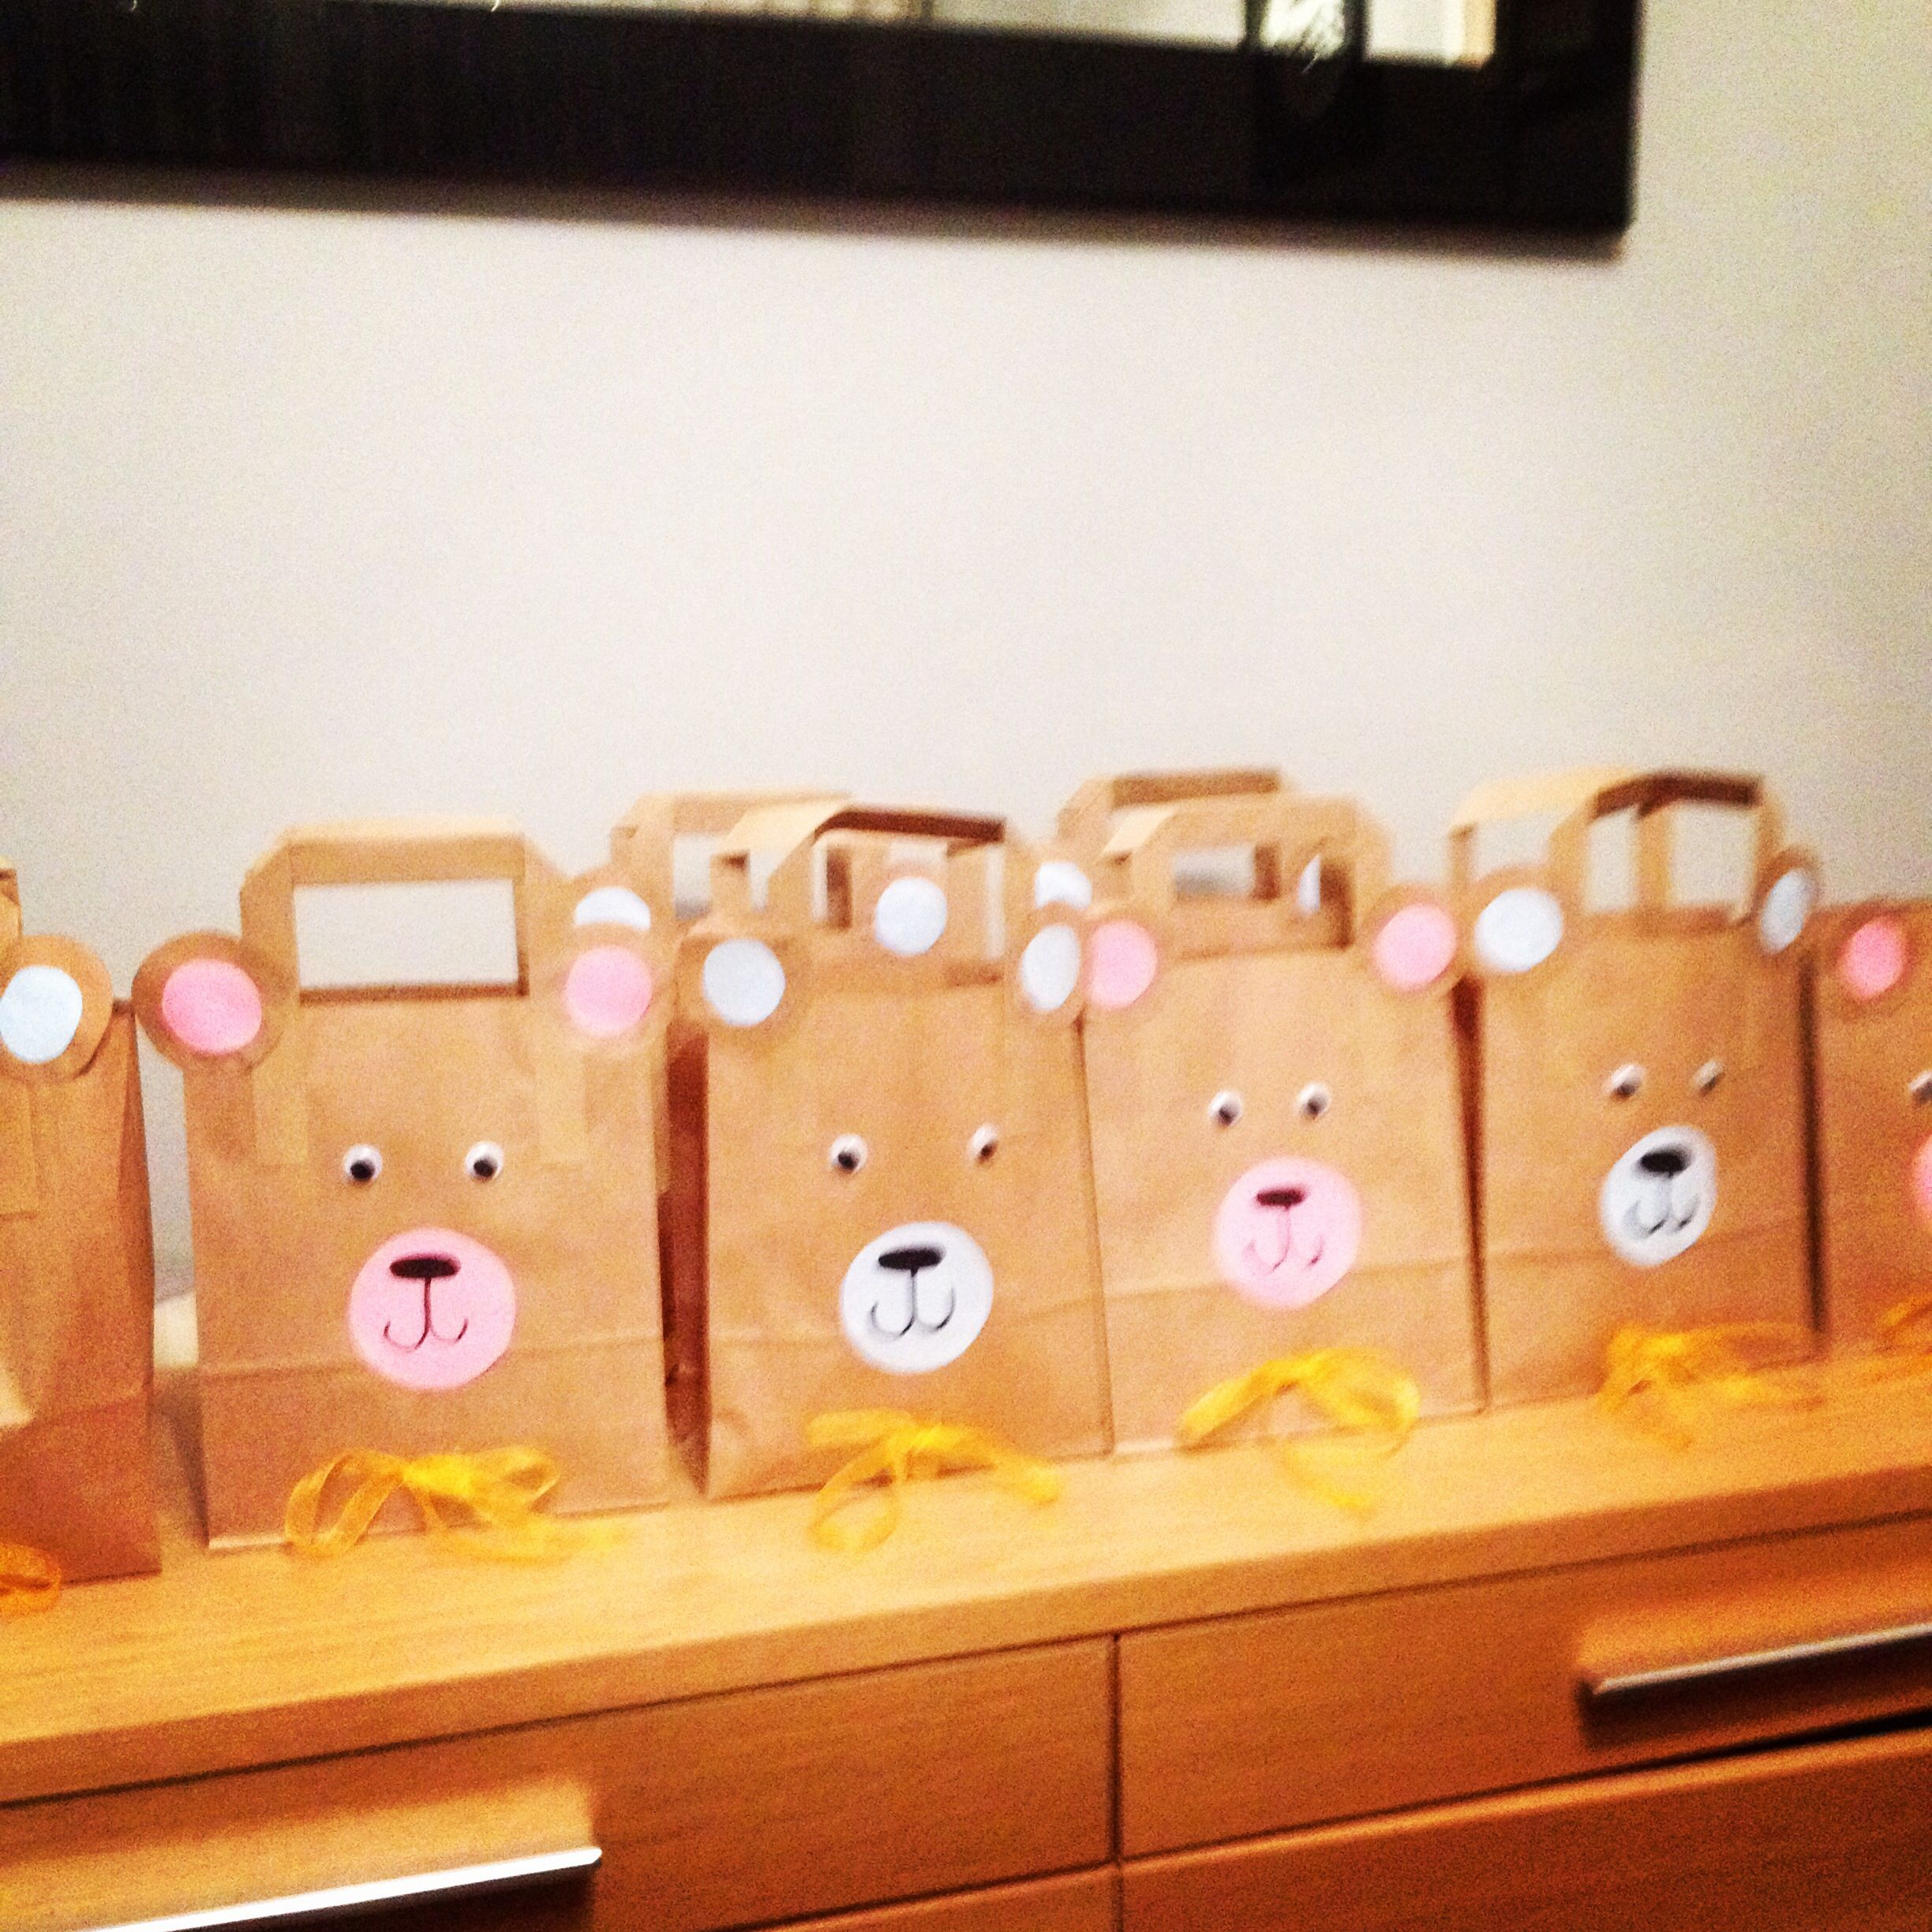 My teddy bear party bags! The kids loved them.